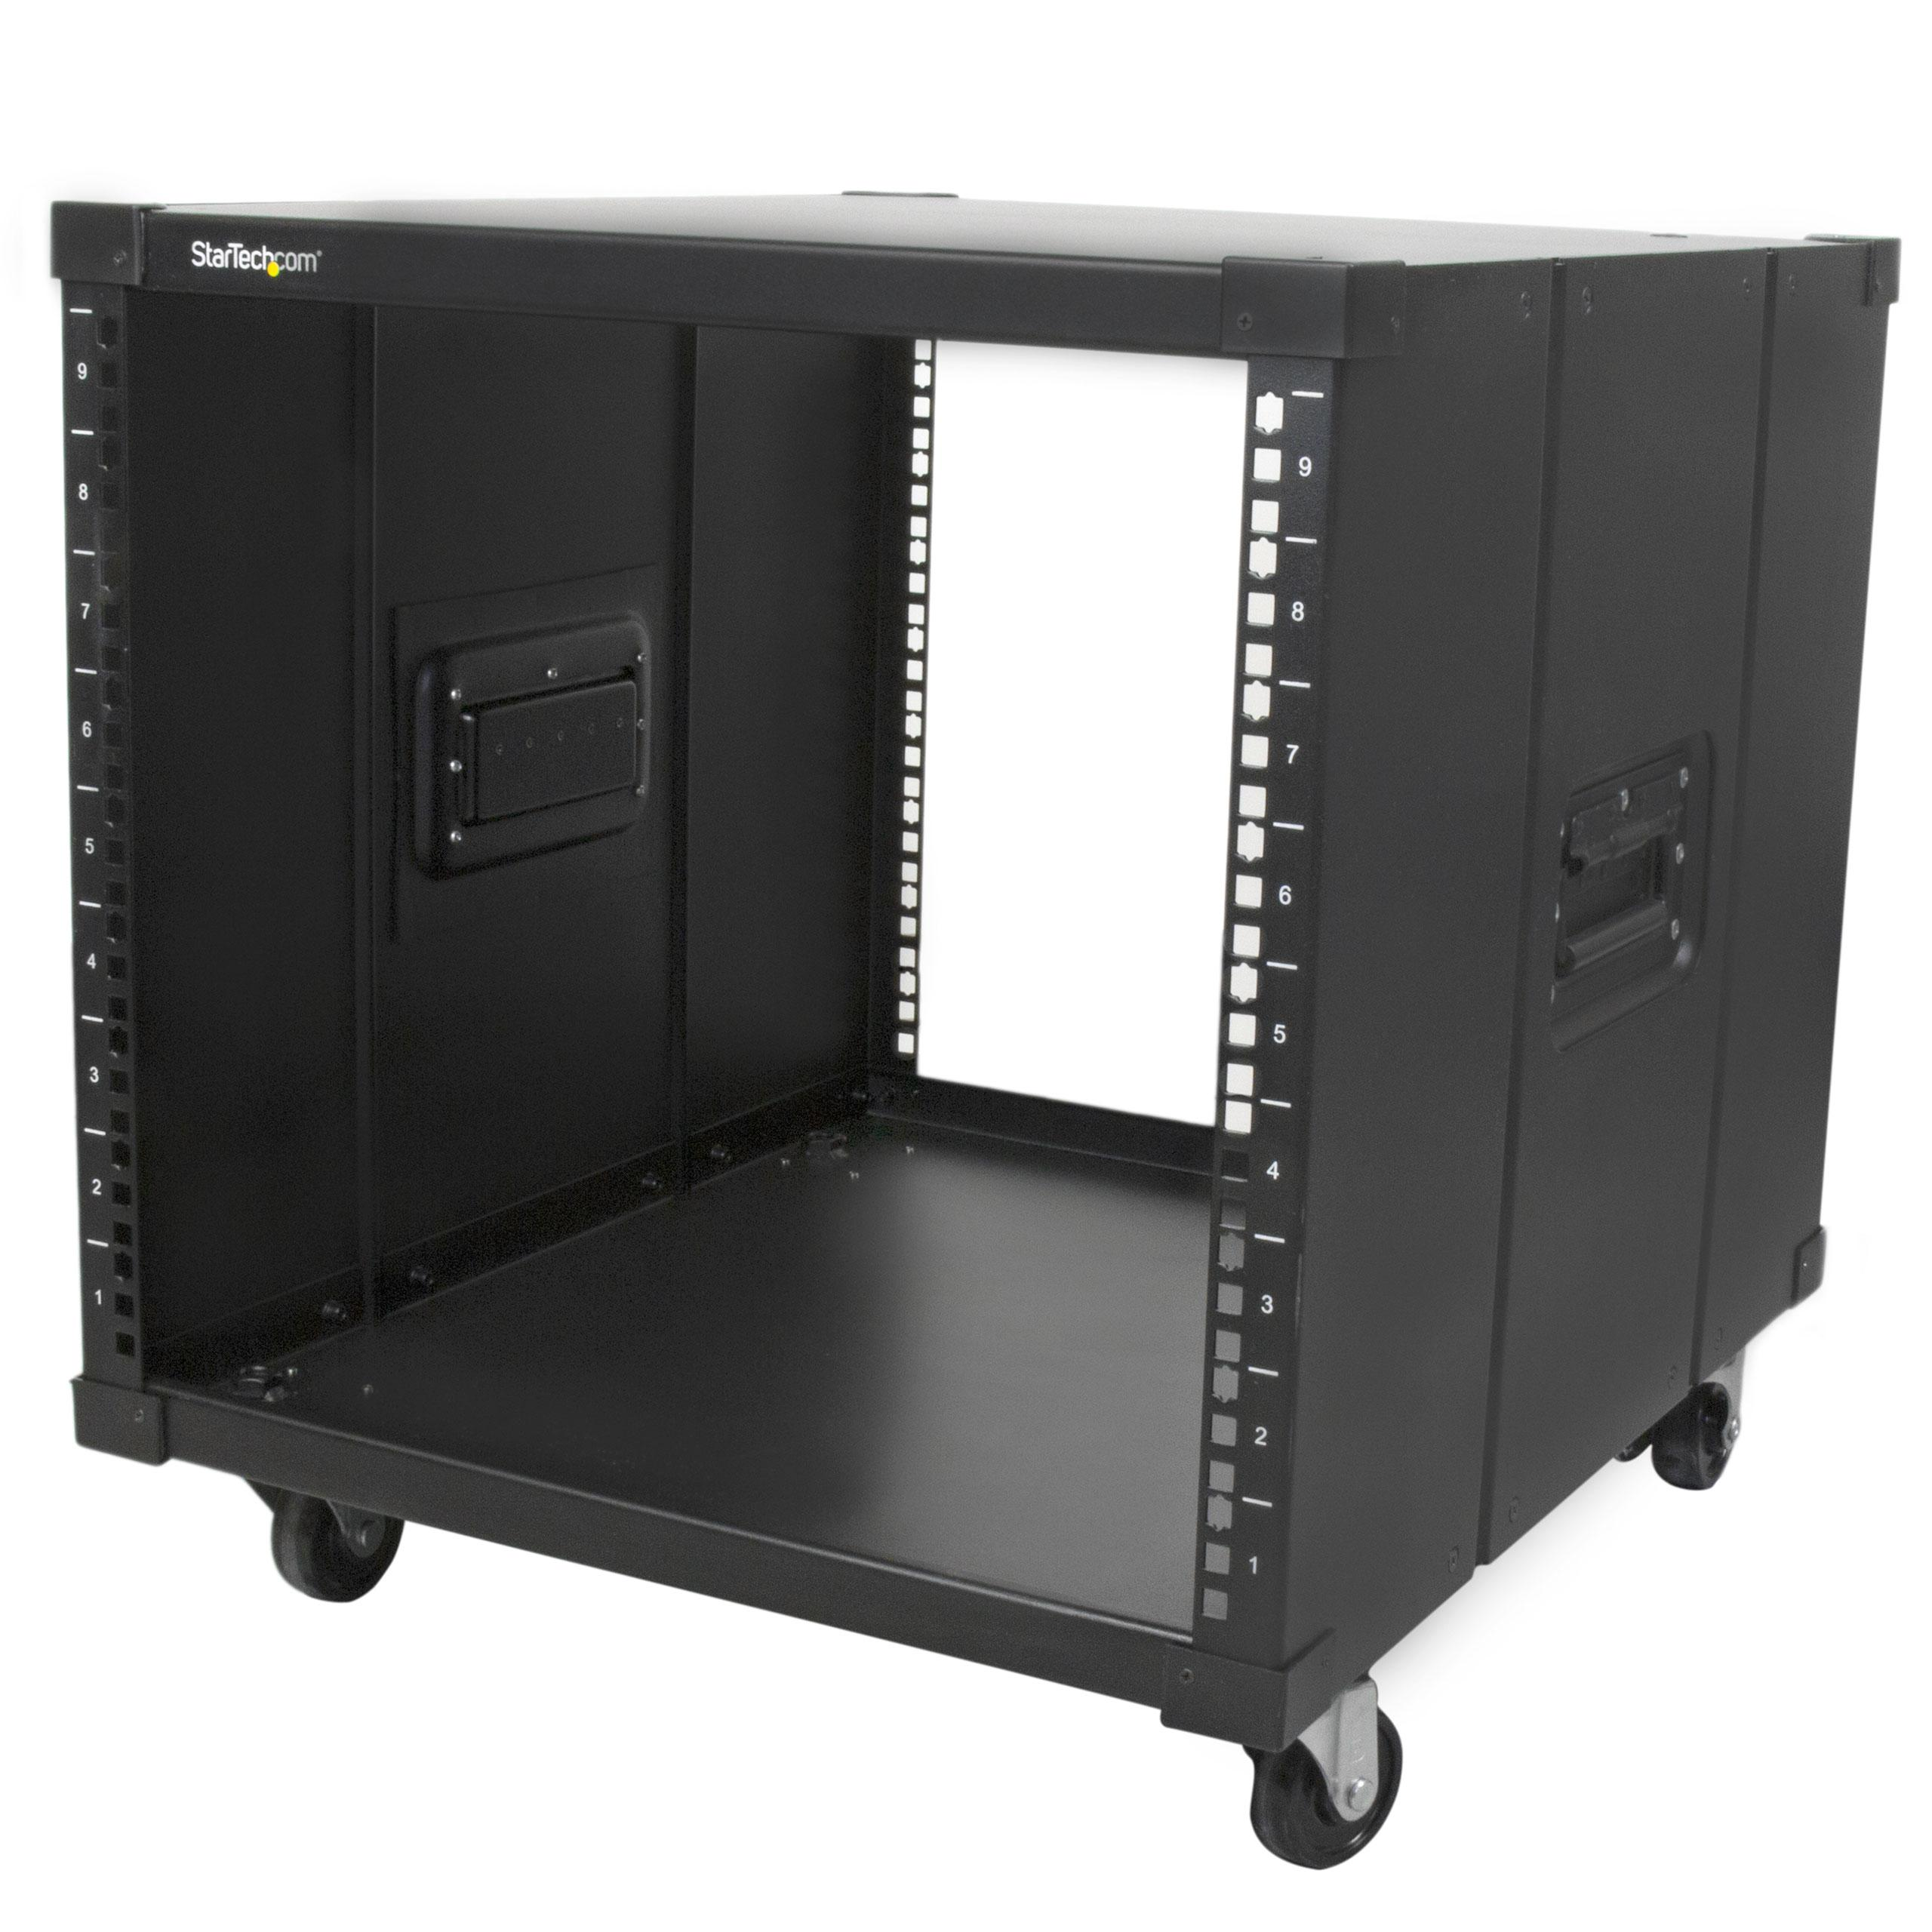 Small Portable Cabinets : Amazon startech portable server rack with handles